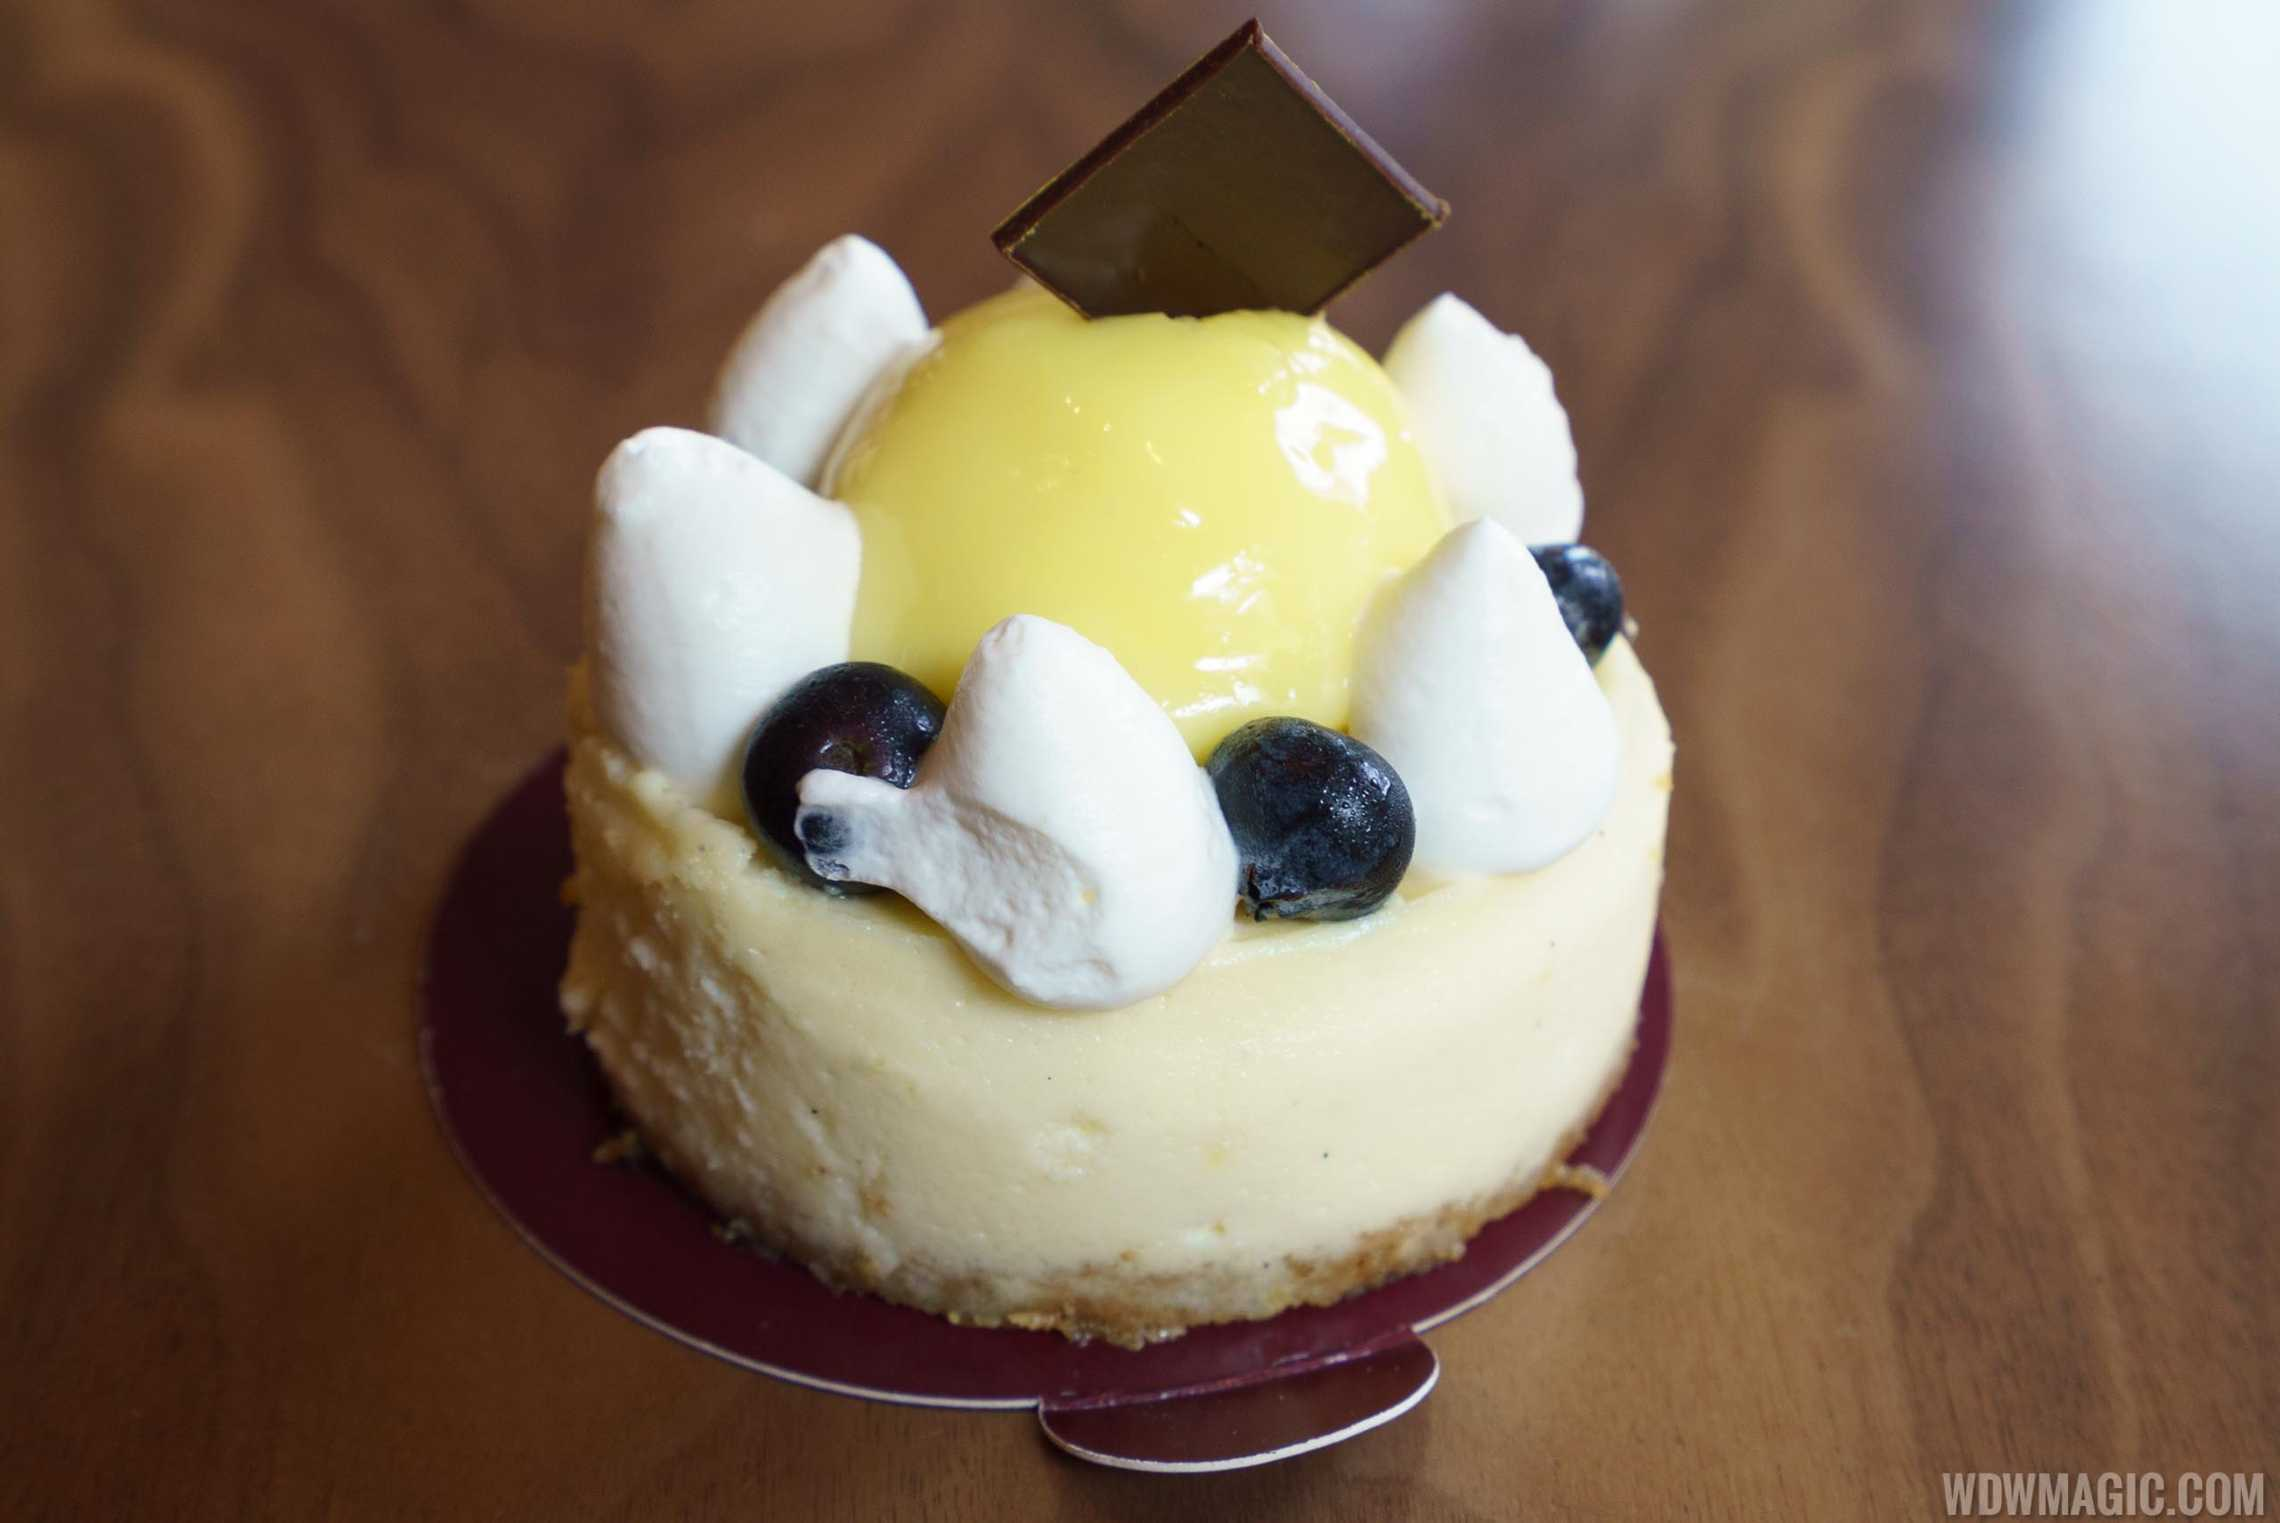 Amorette's Patisserie - 49th and Broadway/N.Y. Cheesecake: Lemon Curd, Blueberries, and Chantilly